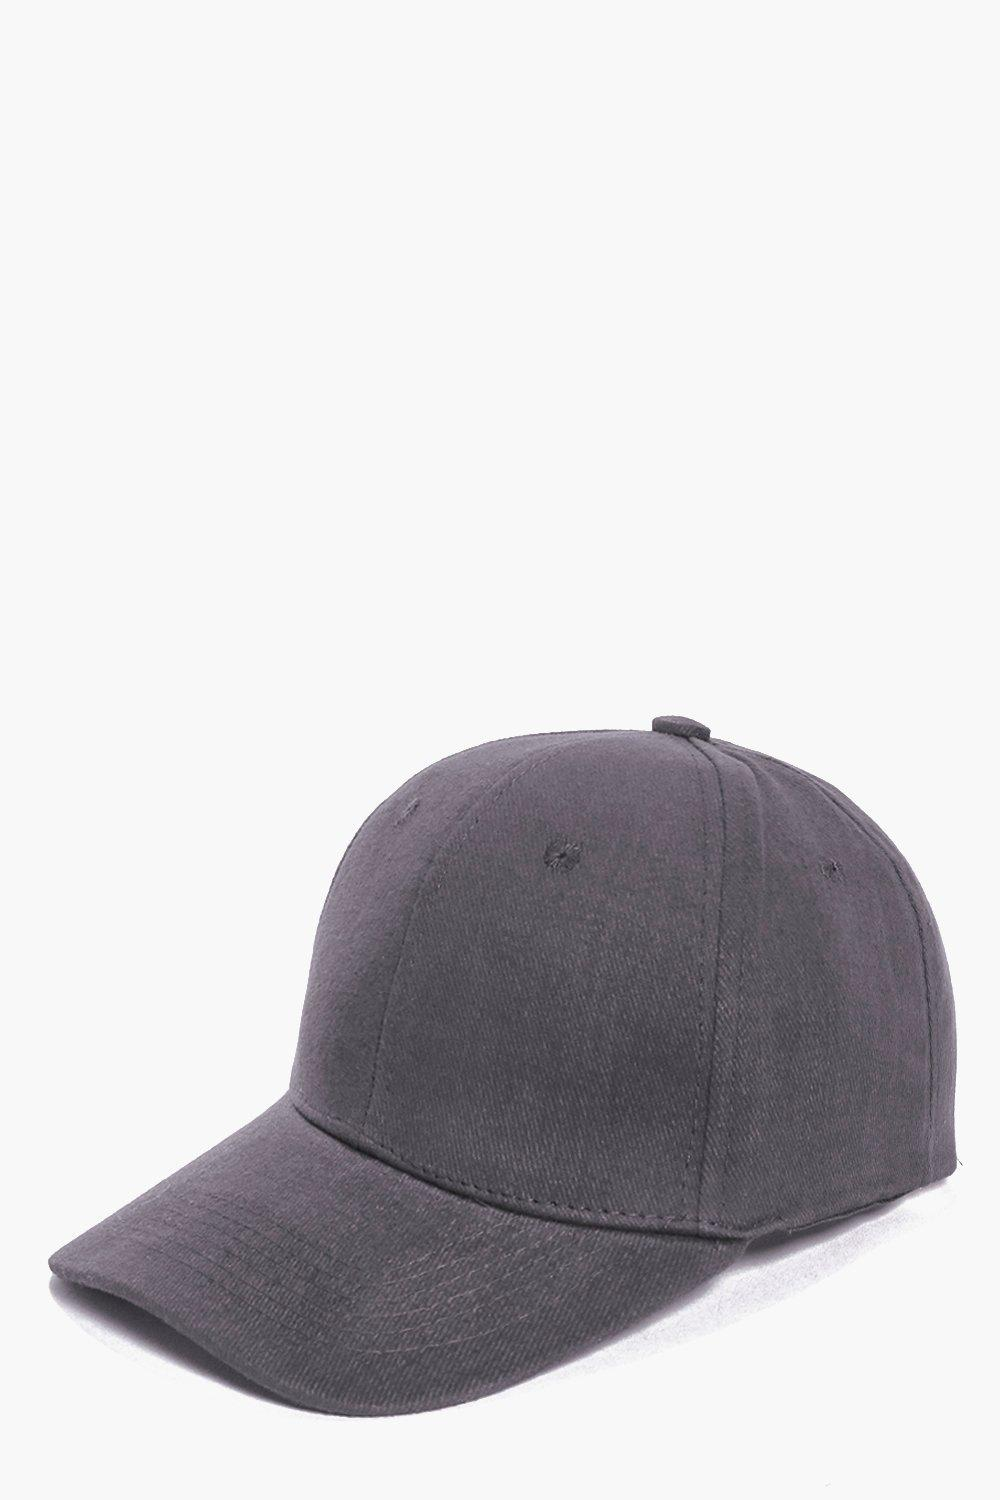 Basic Baseball Cap - grey - Stay snug in scarves a